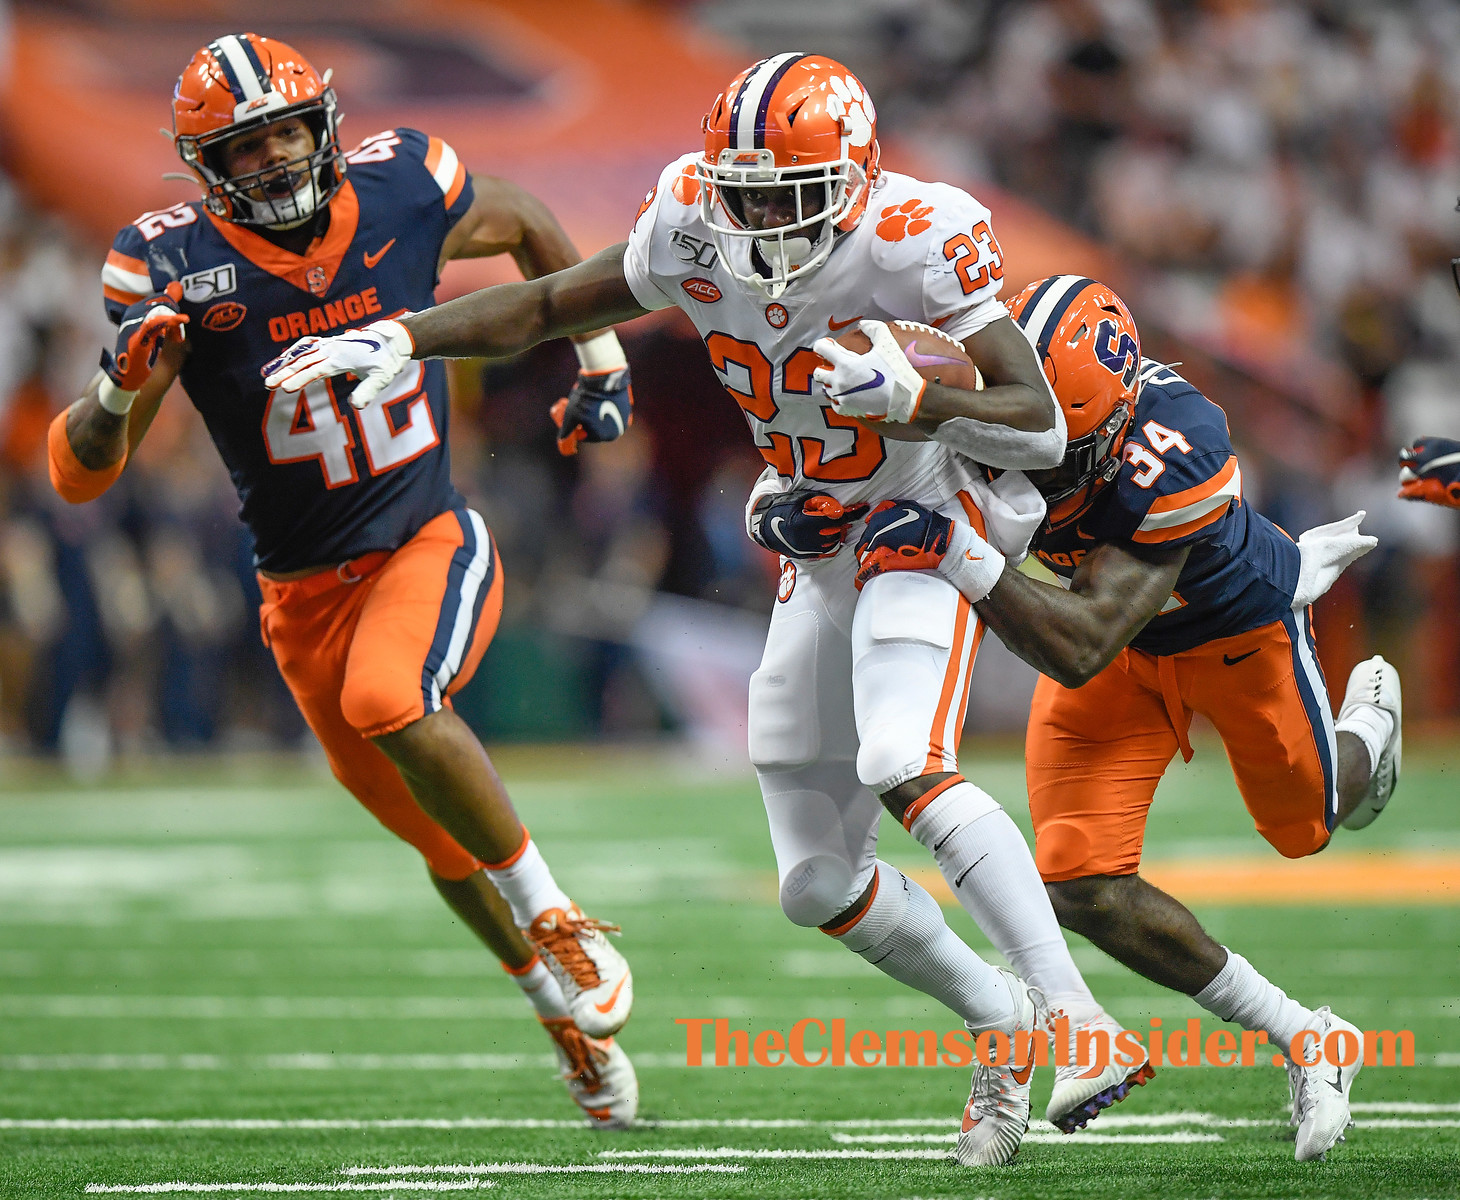 Clemson running back Lyn-J Dixon (23) carries against Syracuse during the 3rd quarter at the Dome in Syracuse, N.Y. Saturday, September 14, 2019. Bart Boatwright/The Clemson Insider